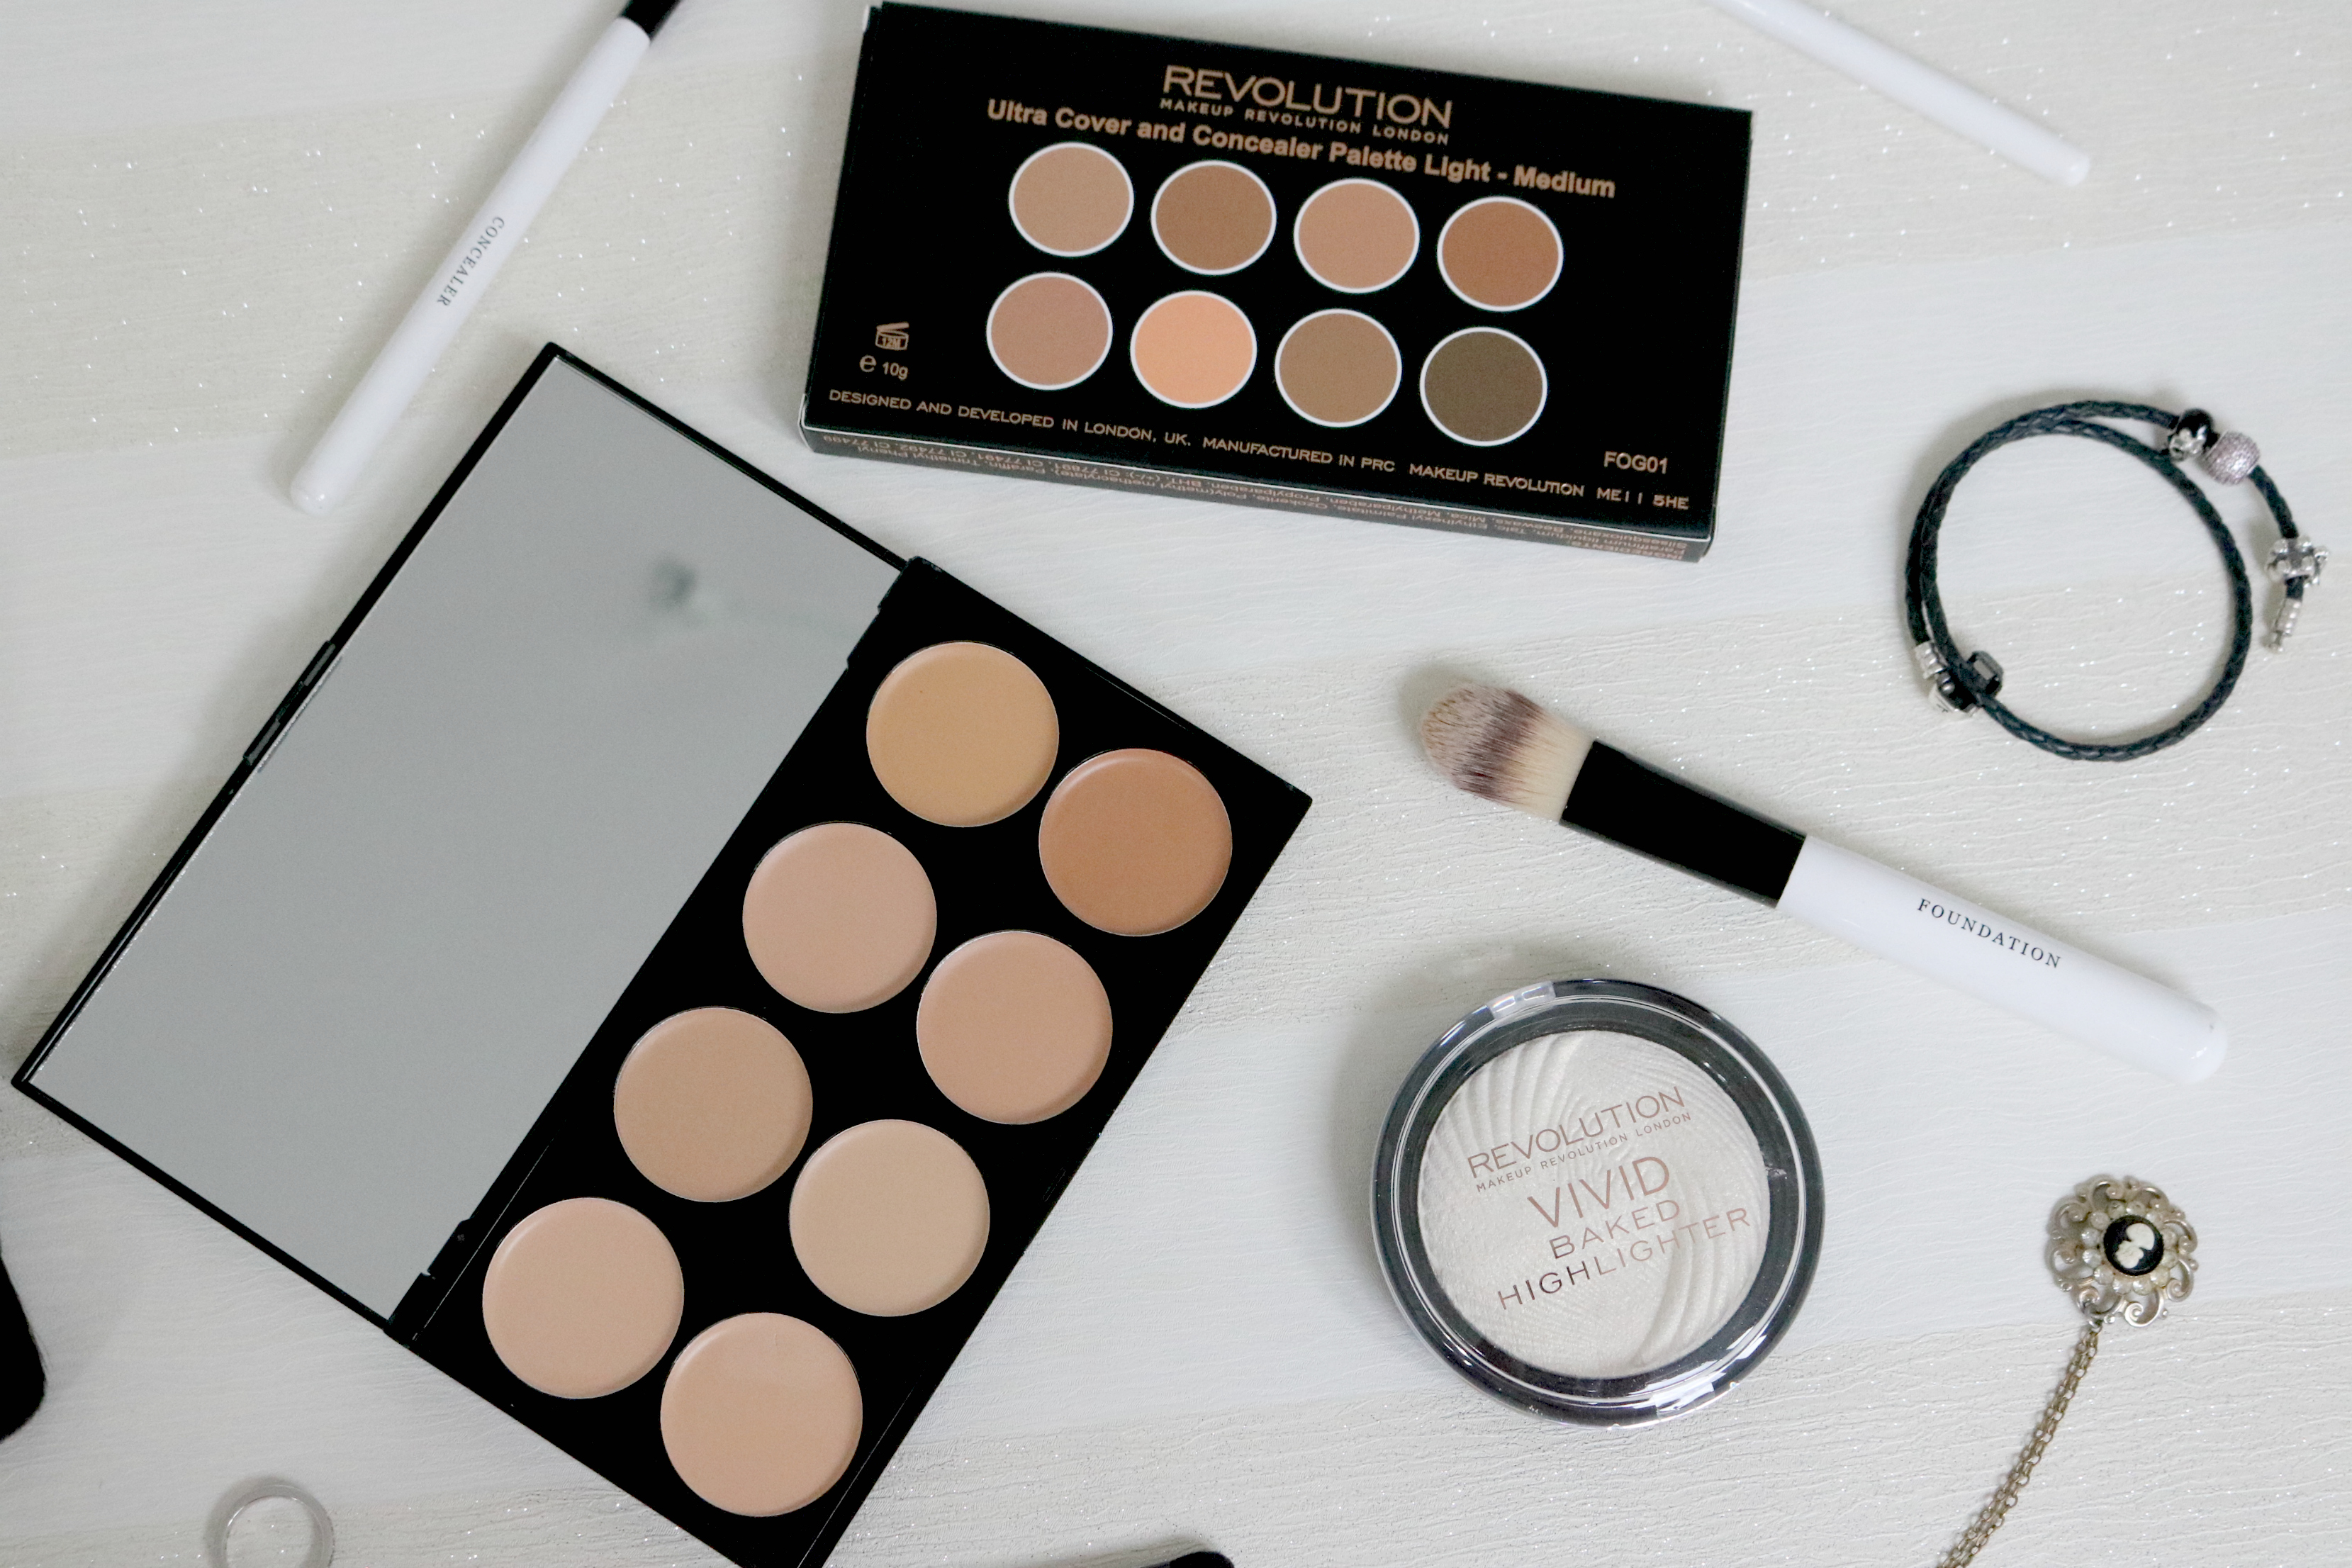 Jodetopia Makeup Revolution Ultra Cover and Conceal Palette Baked Highlighter Review